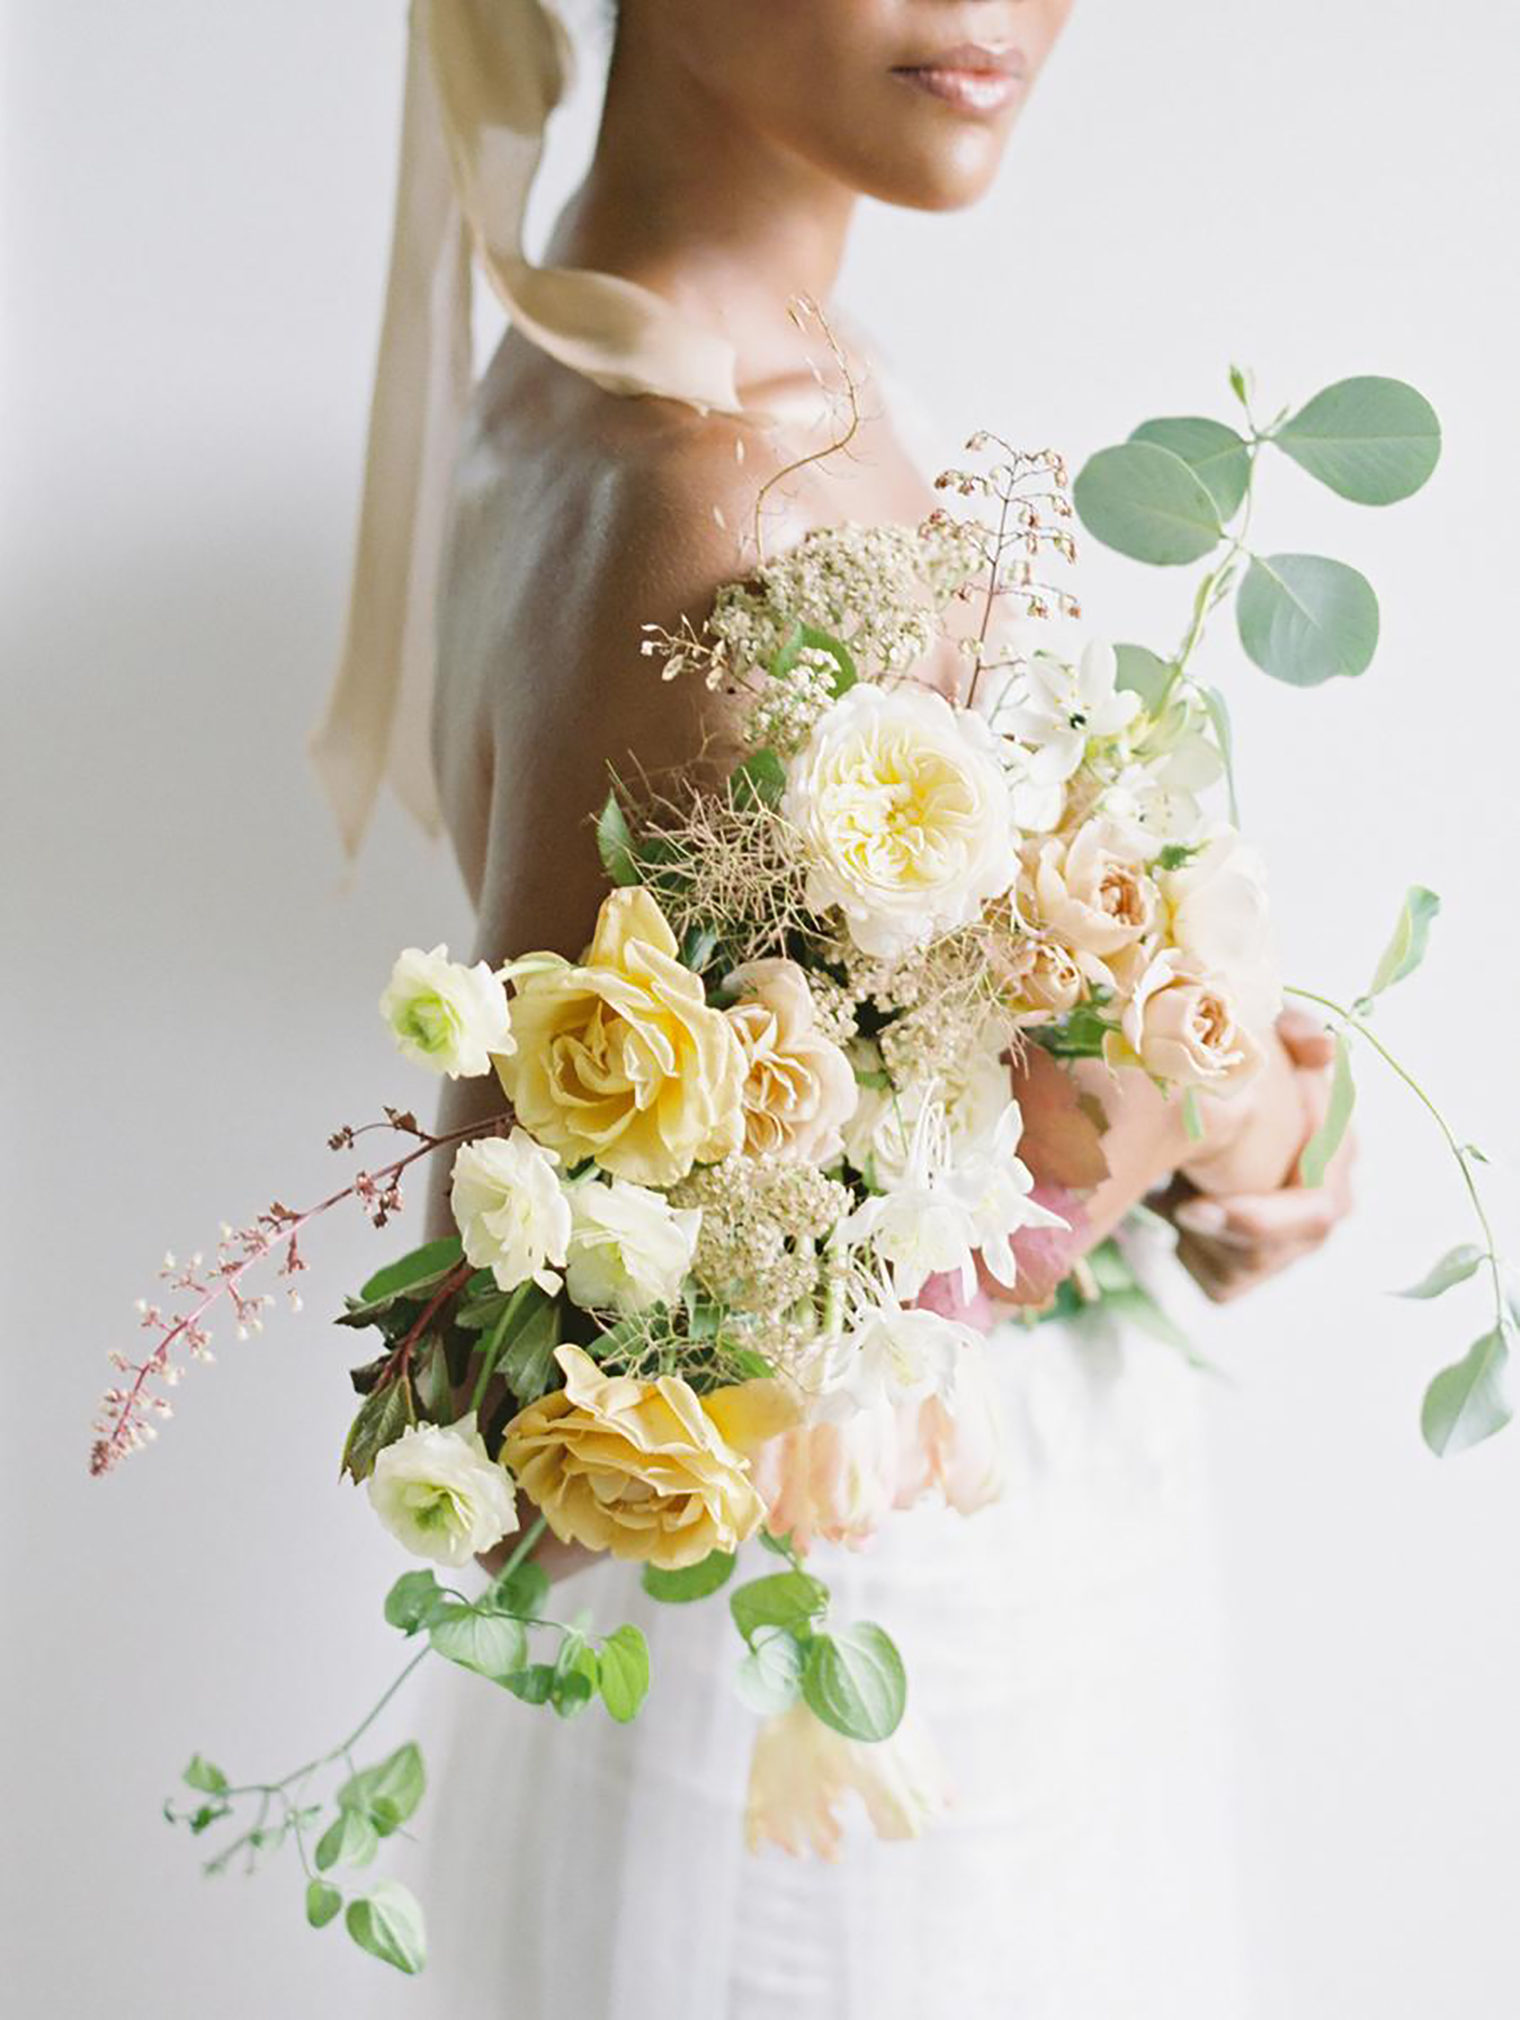 Wedding bouquet by Kelly Lenard captured by Clary Pfeiffer Photography